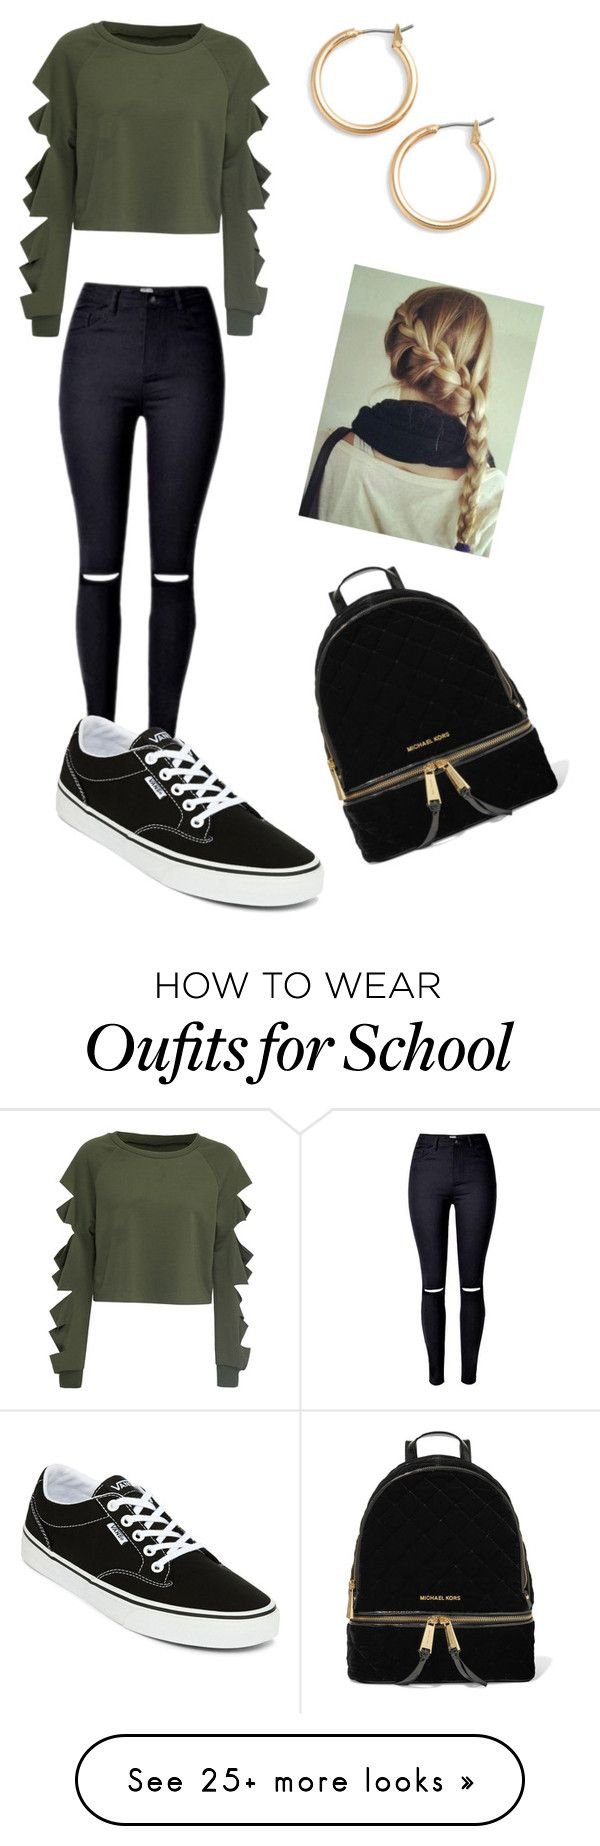 """School"" by gisselleotero on Polyvore featuring WithChic, Vans, Nordstrom and MICHAEL Michael Kors"